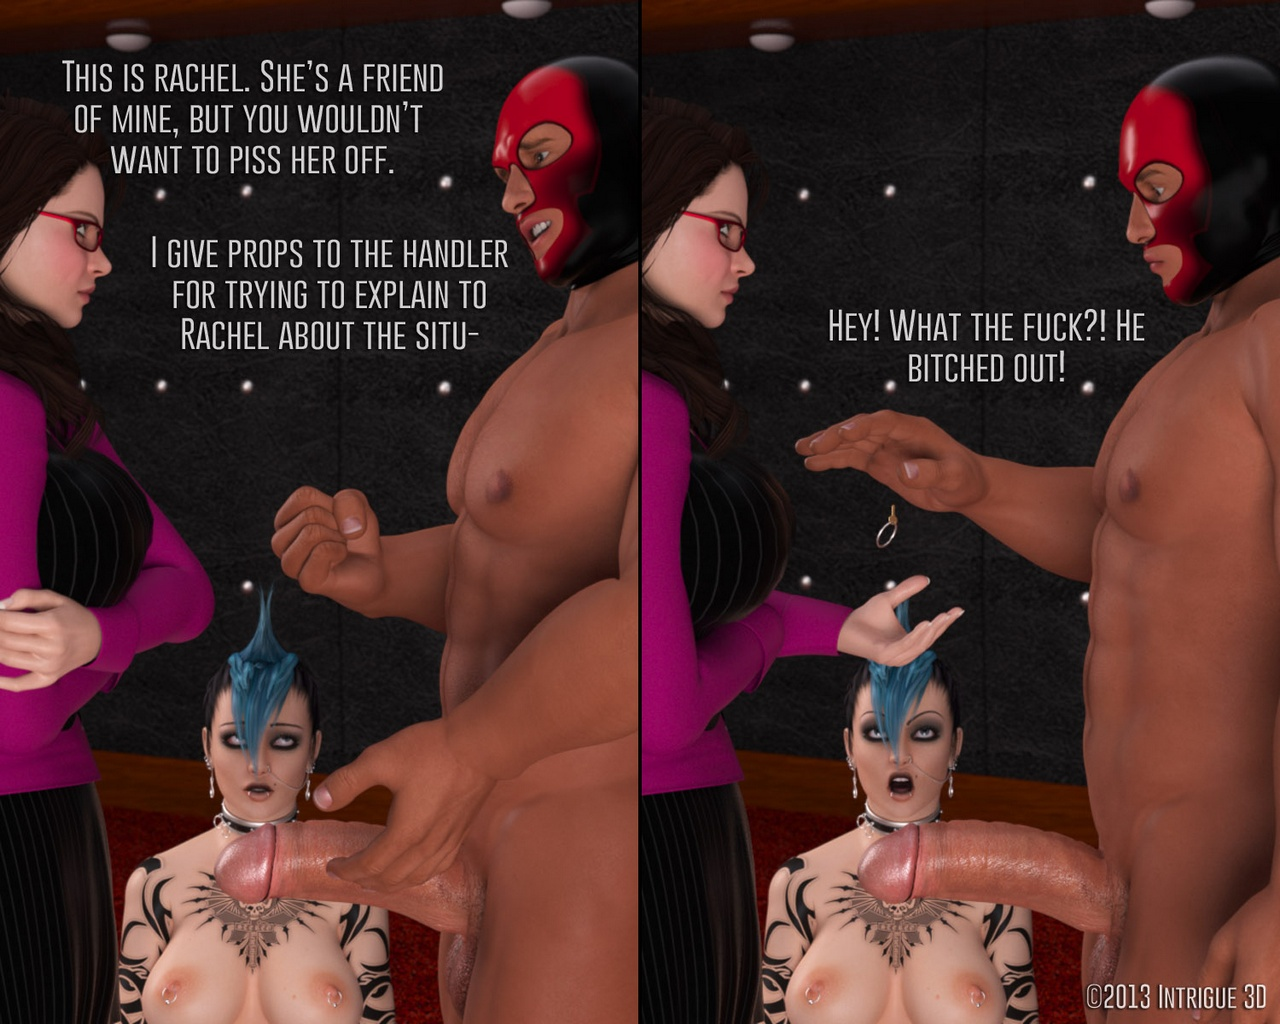 Zoey Gets Fucked (Over) - part 2